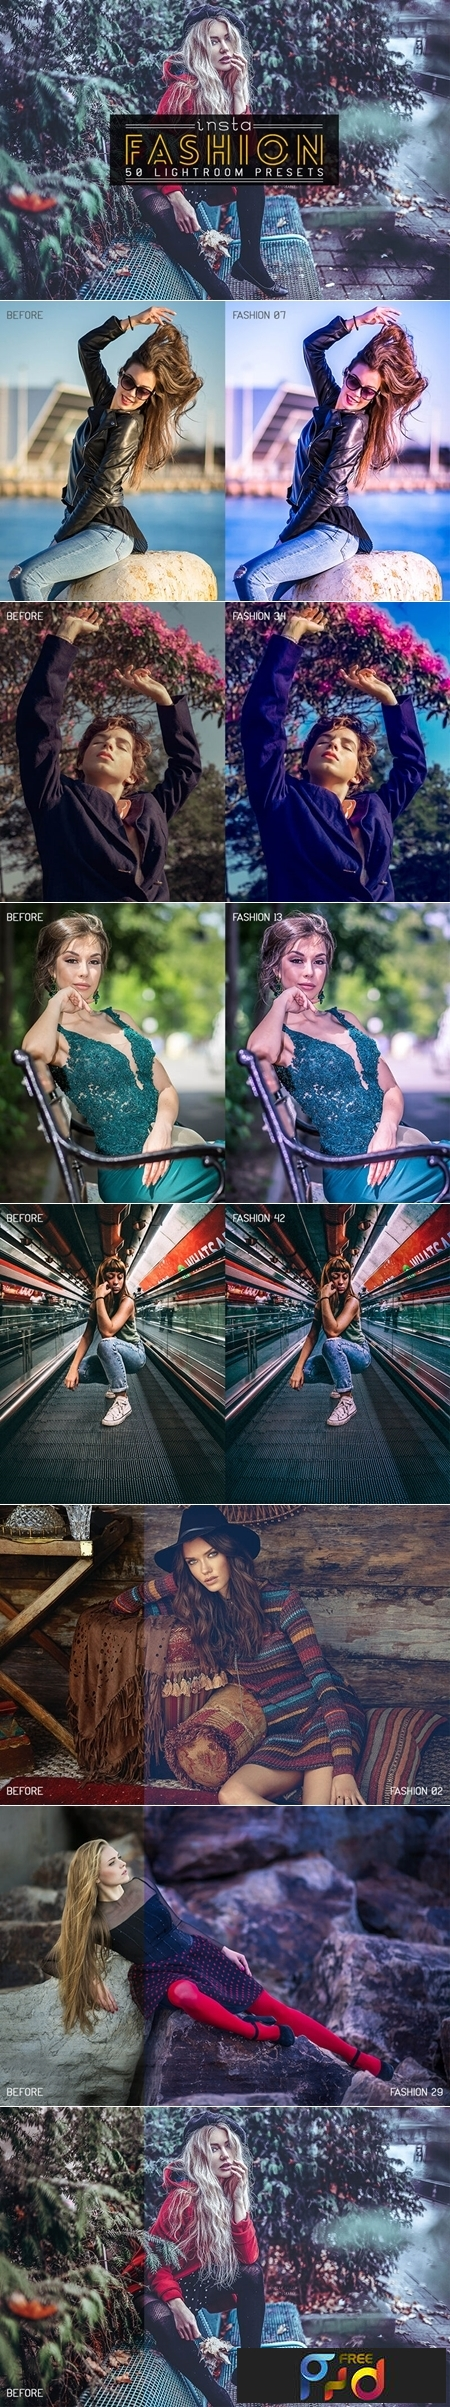 50 Insta Fashion Lightroom Presets 1